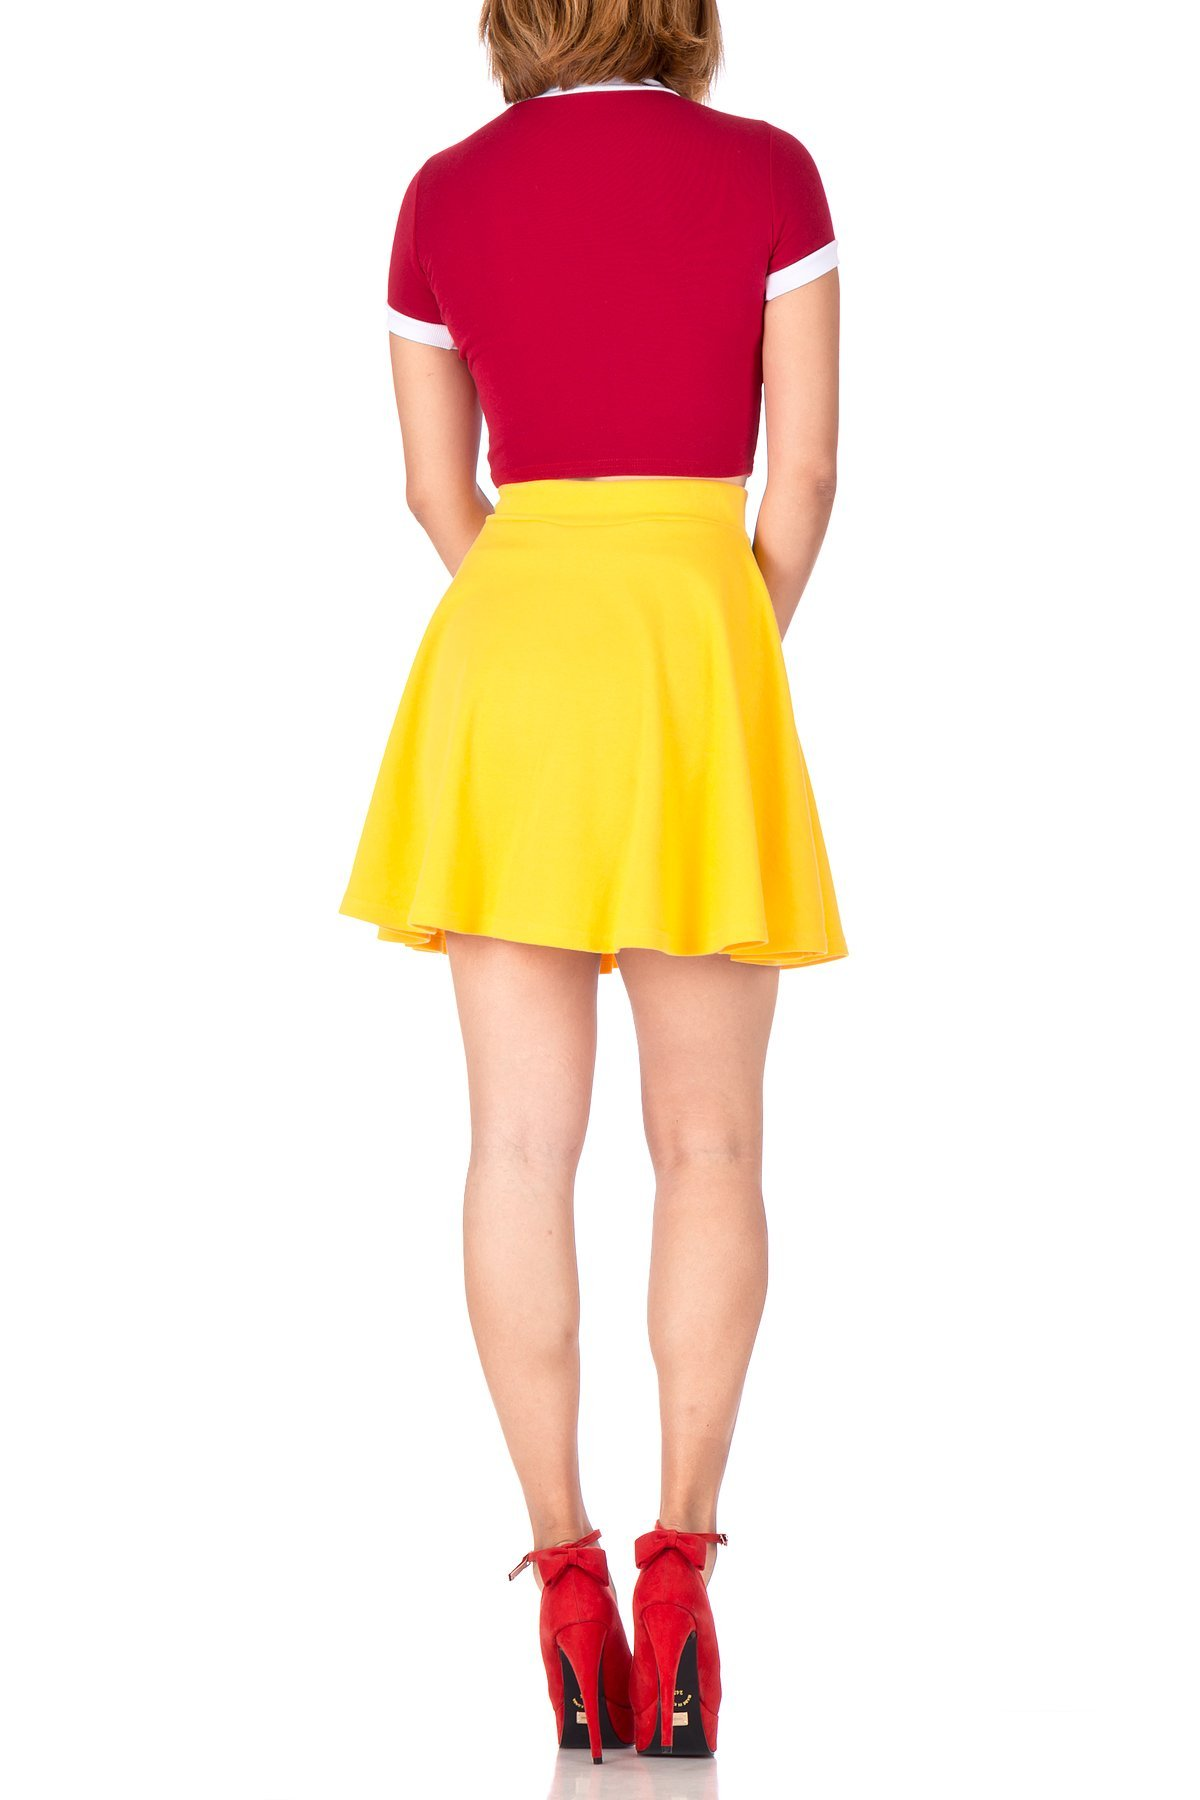 Basic Solid Stretchy Cotton High Waist A line Flared Skater Mini Skirt Yellow 05